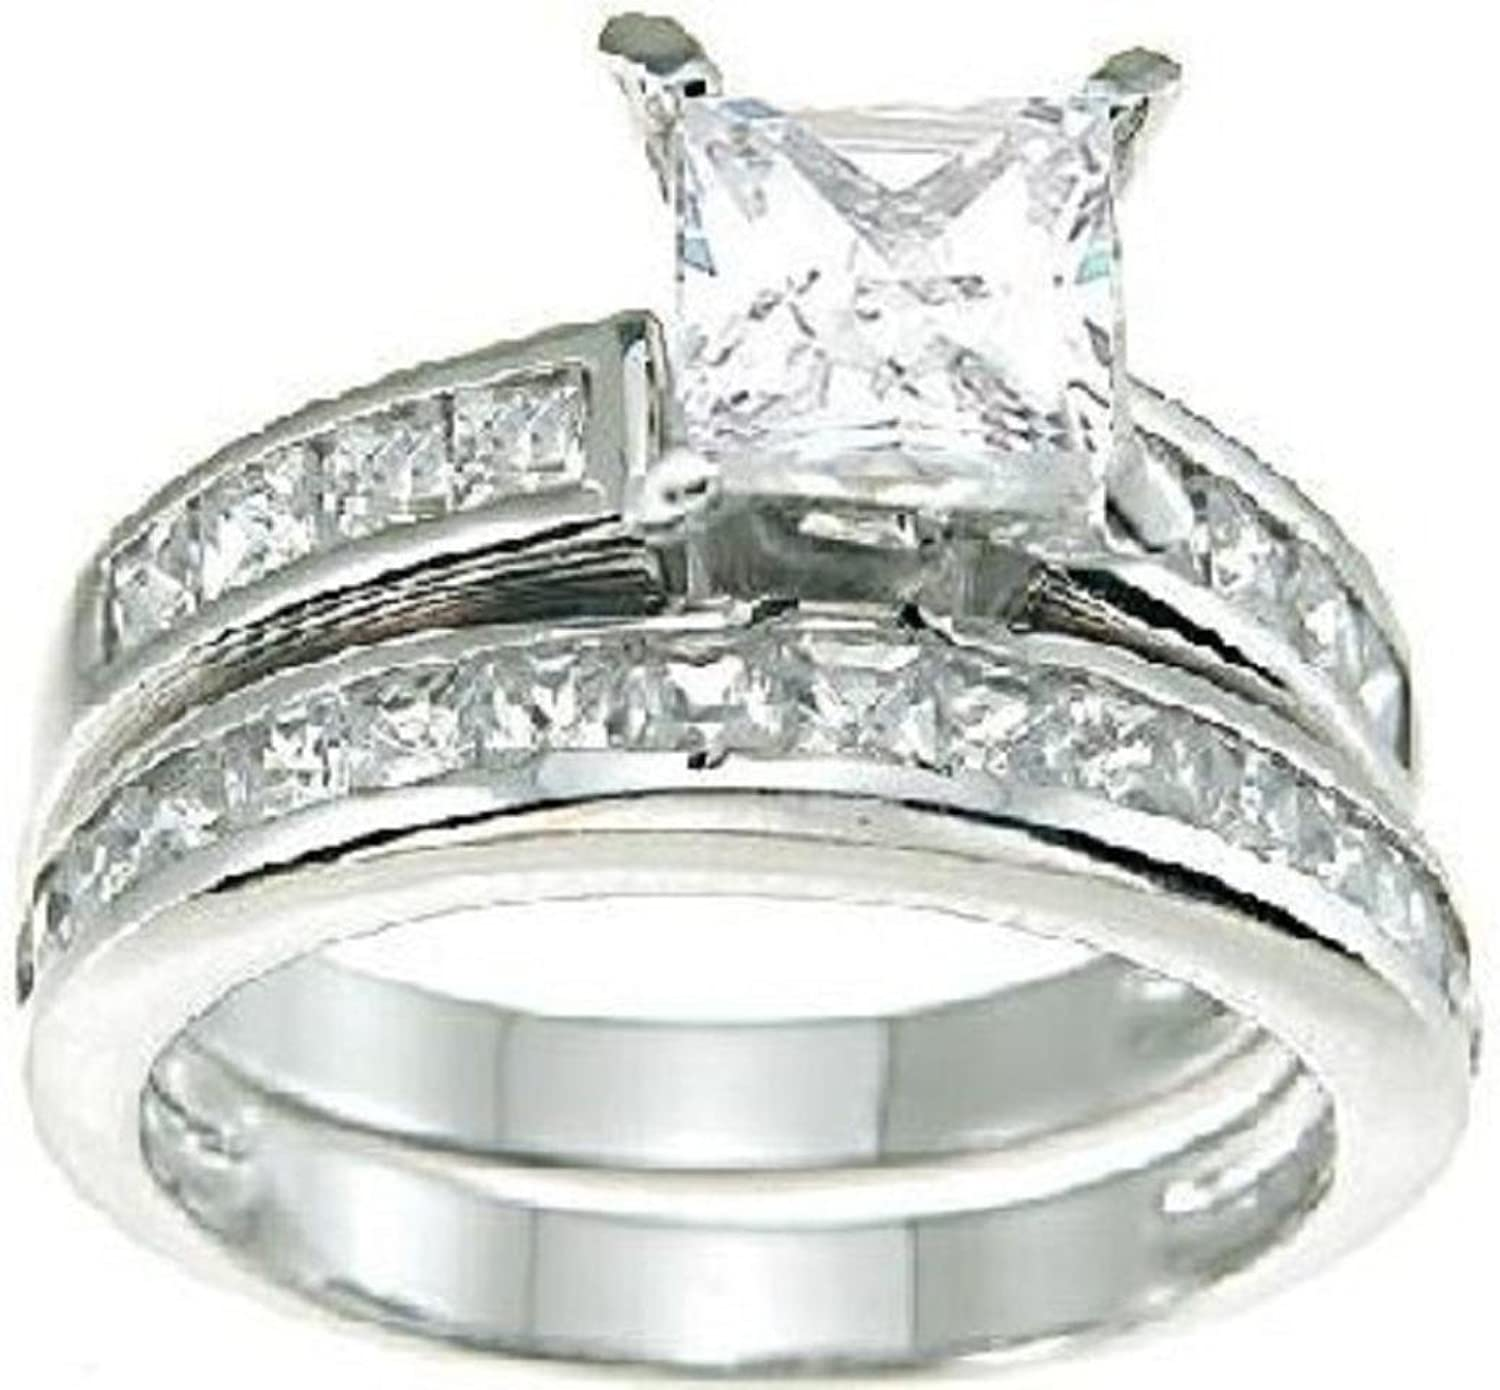 princess cut white cz wedding band engagement ring set